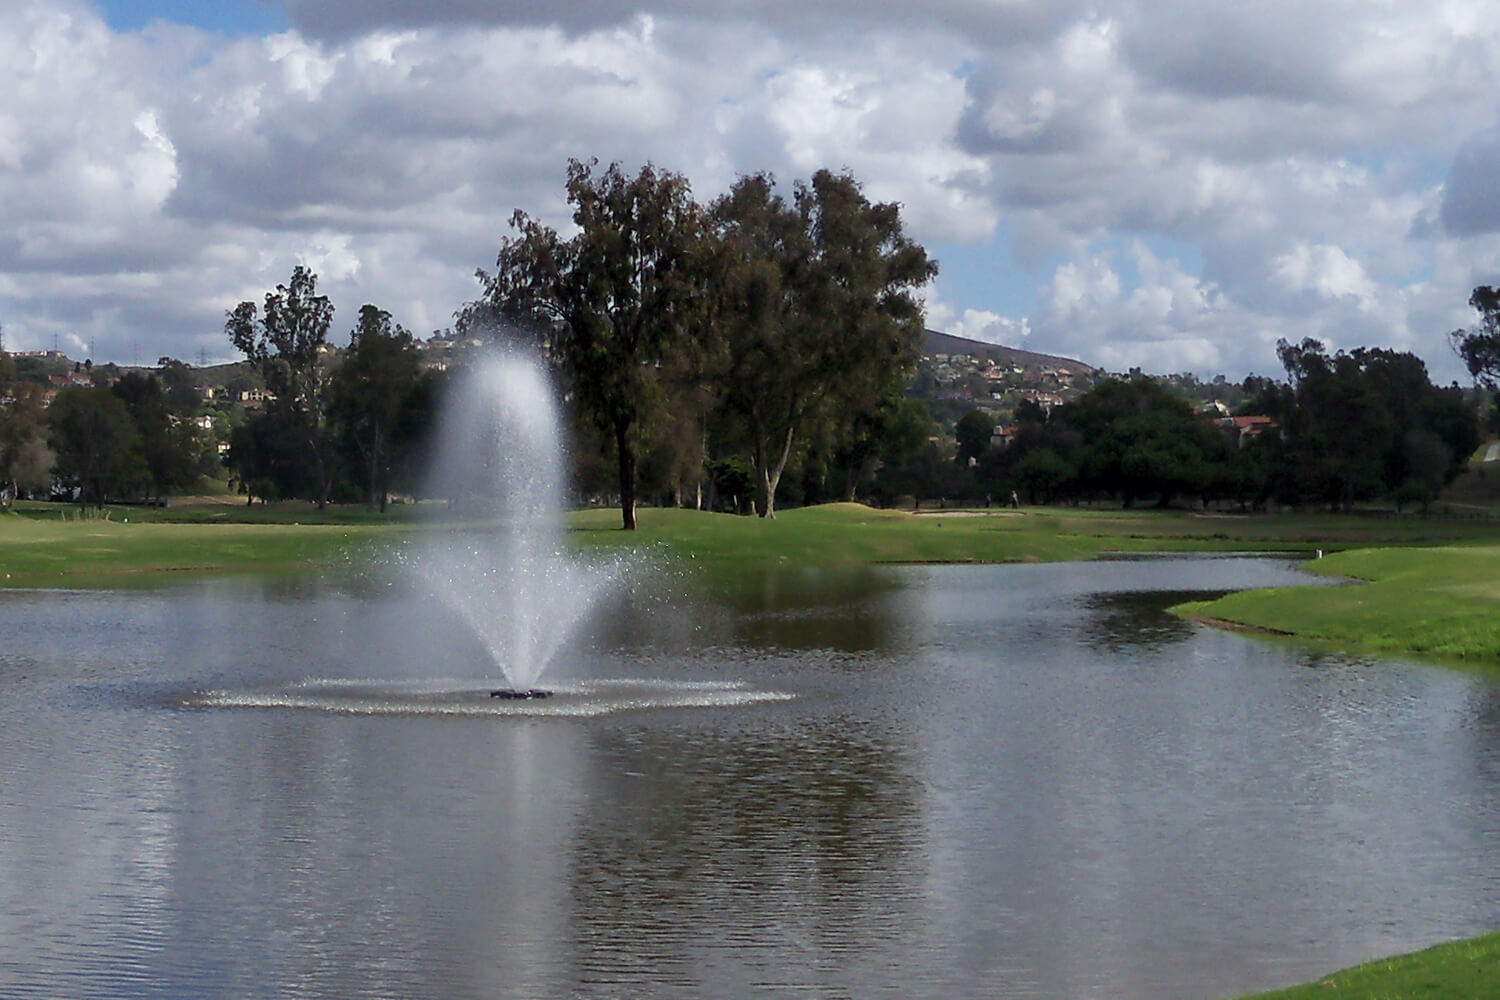 One of Otterbine's Phoenix Aerating Fountains in a golf course